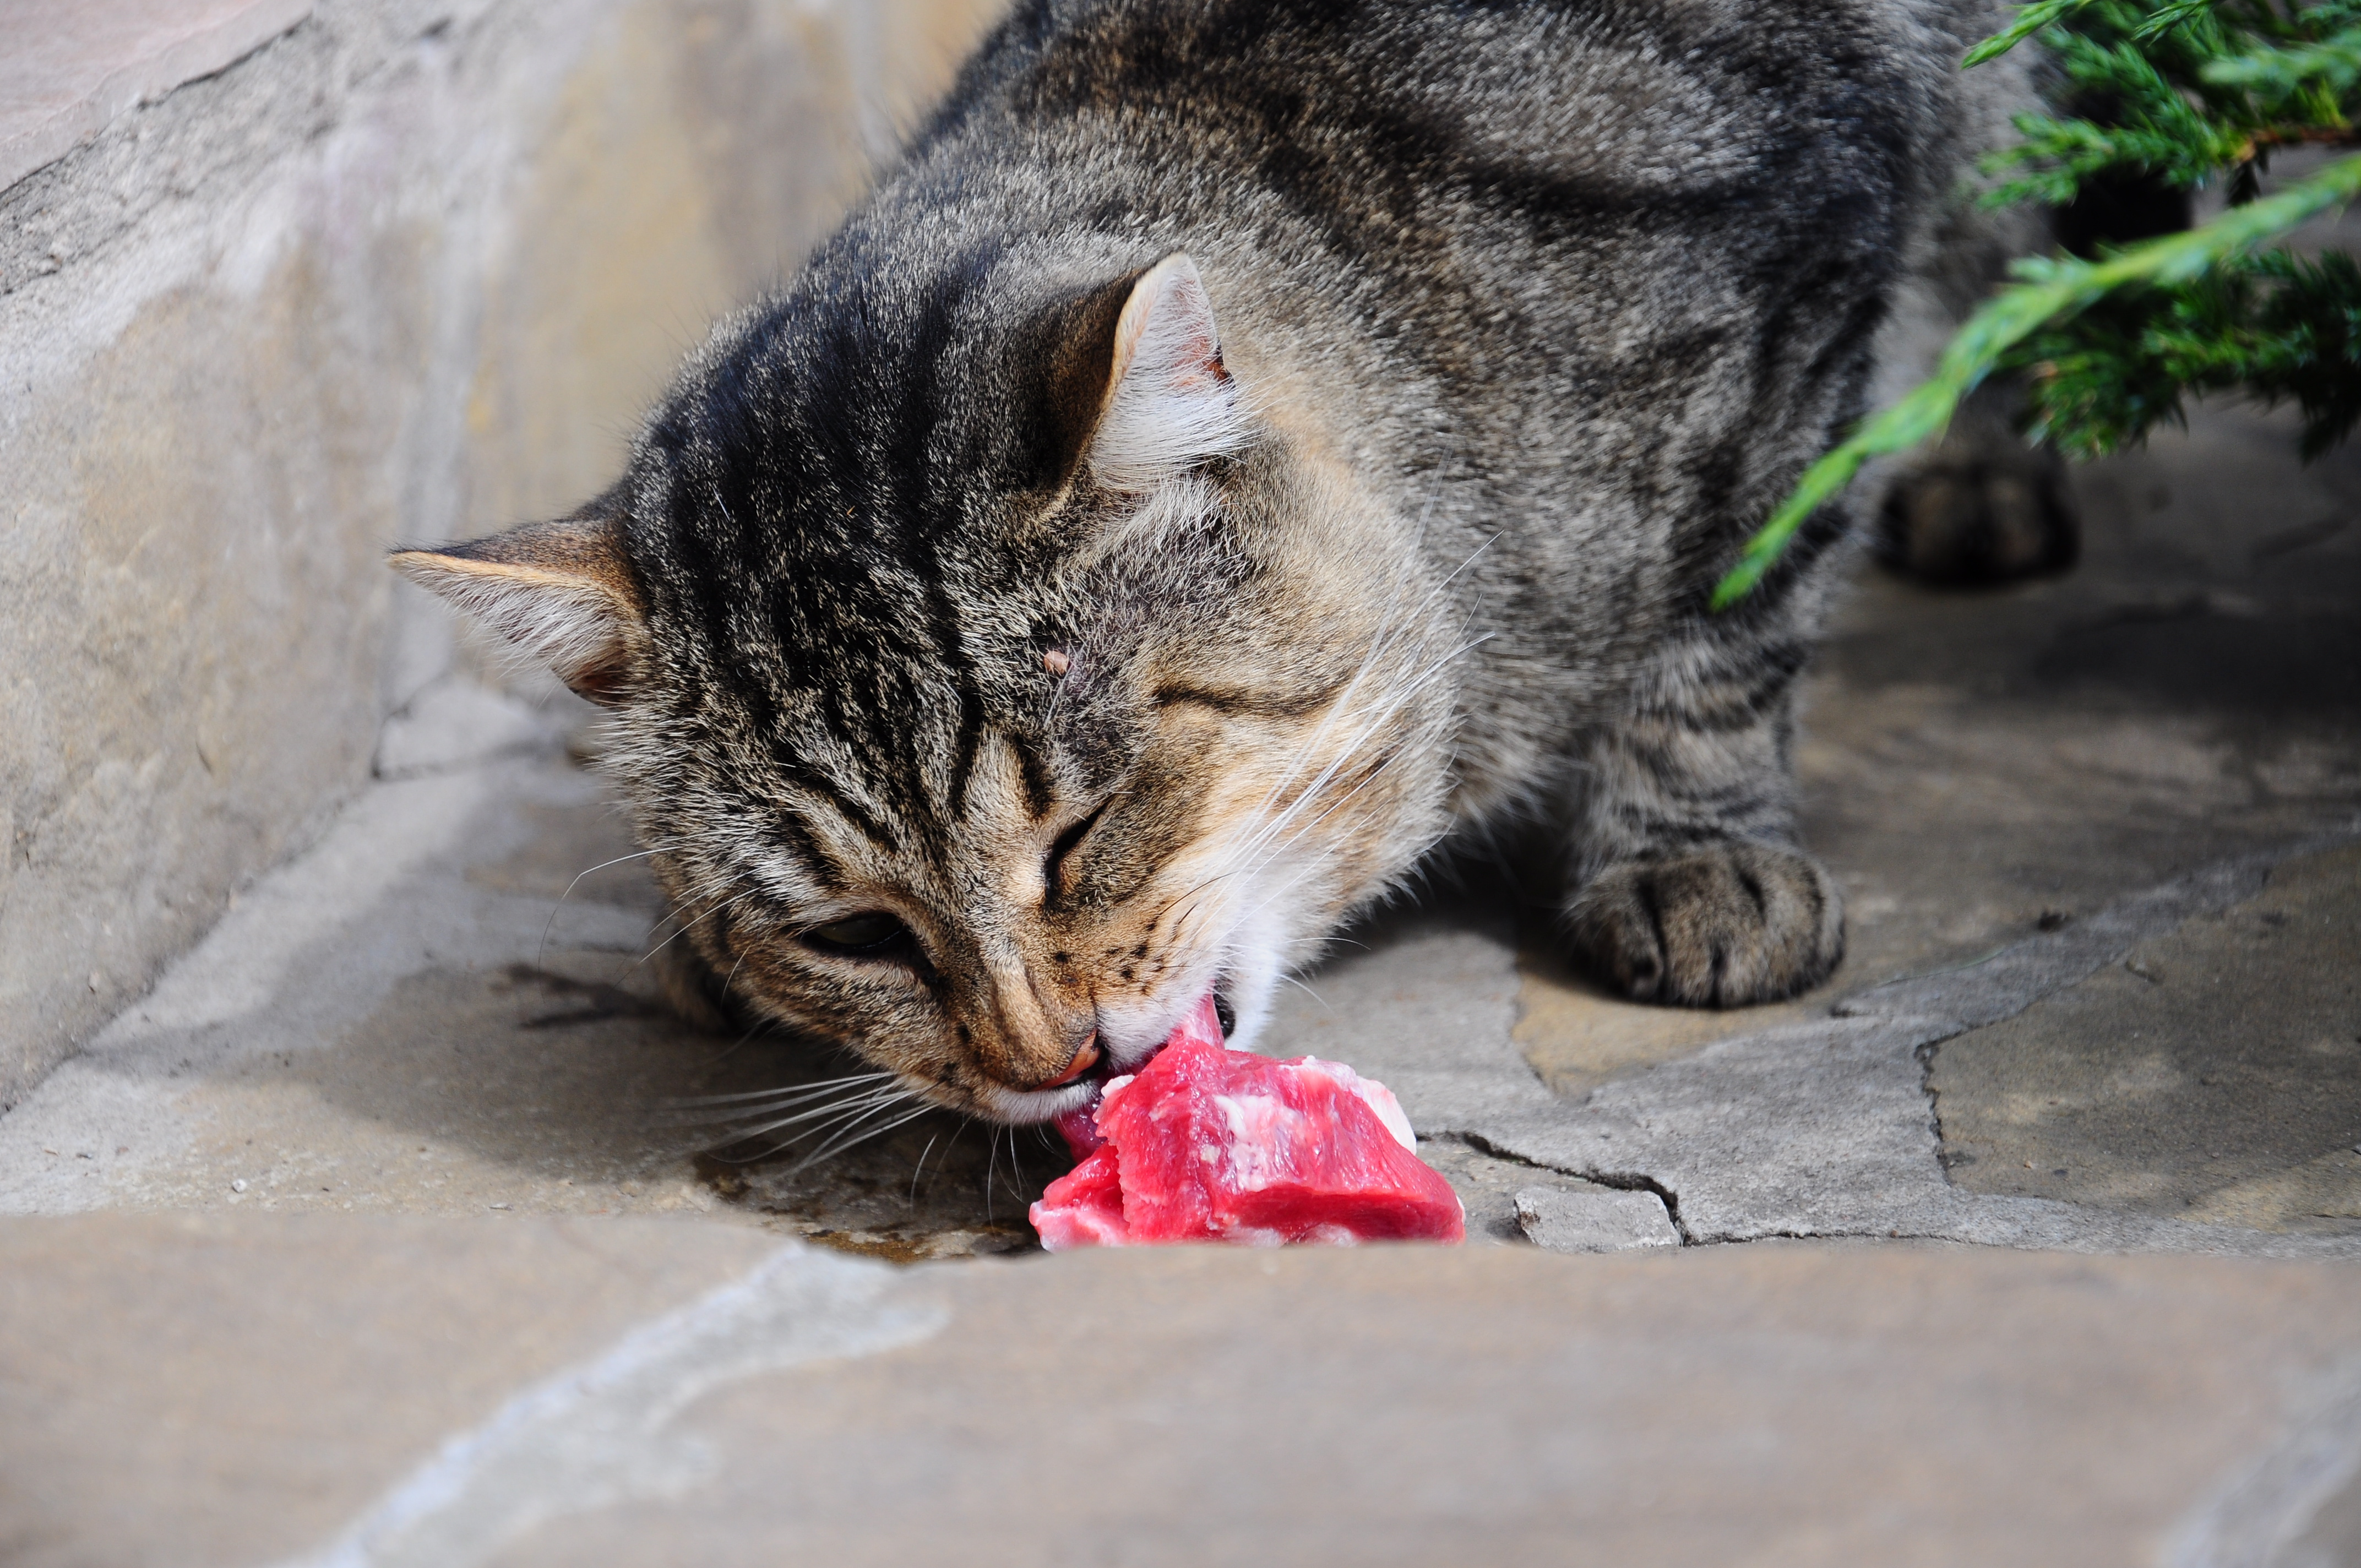 An image of a cat eating raw meat. The cat is a a tabby and is sitting outside